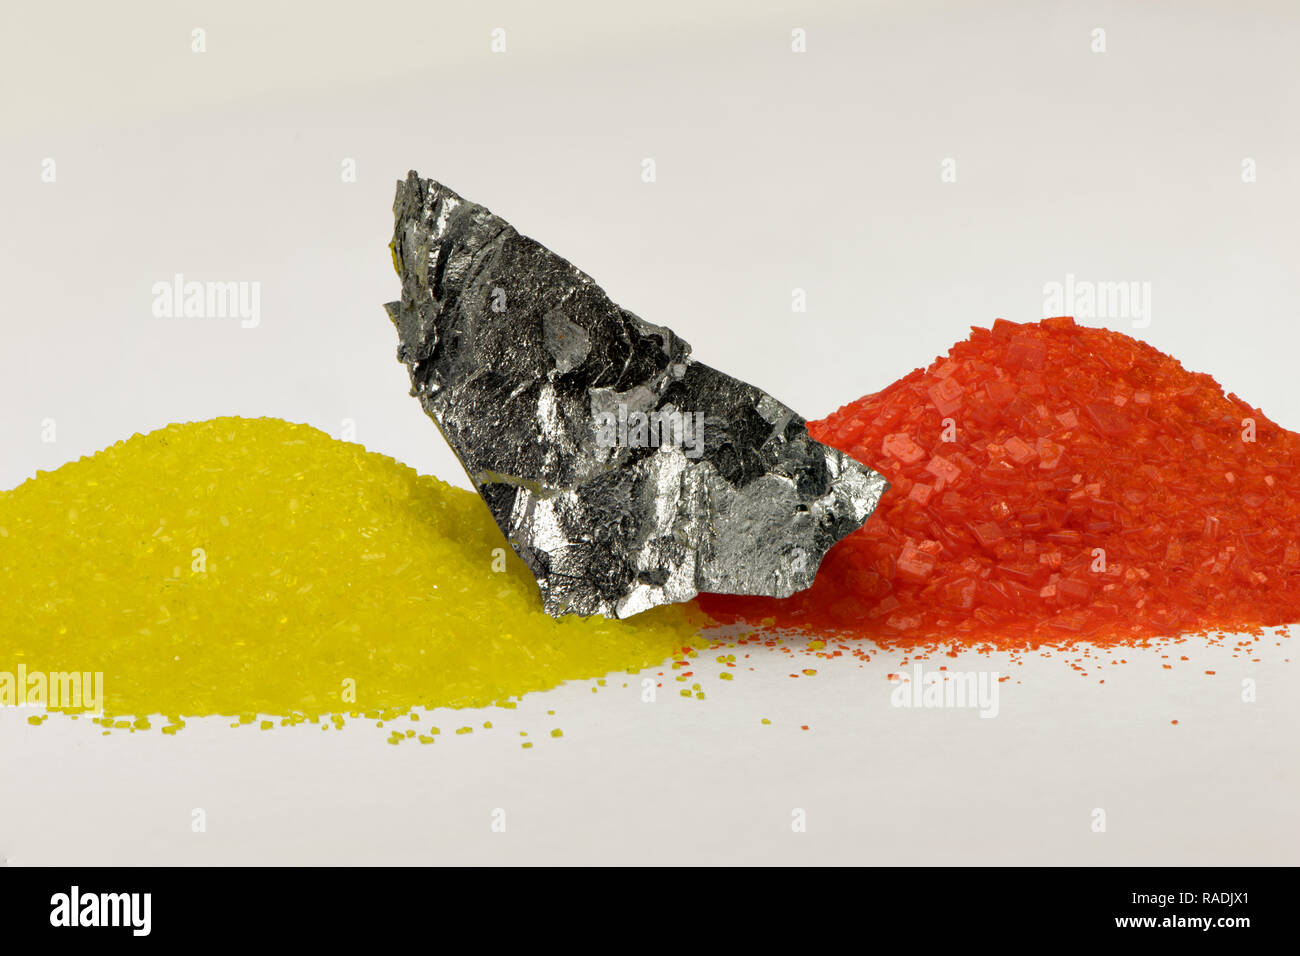 element chromium, Cr, with its salts chromate and dichromate - Stock Image